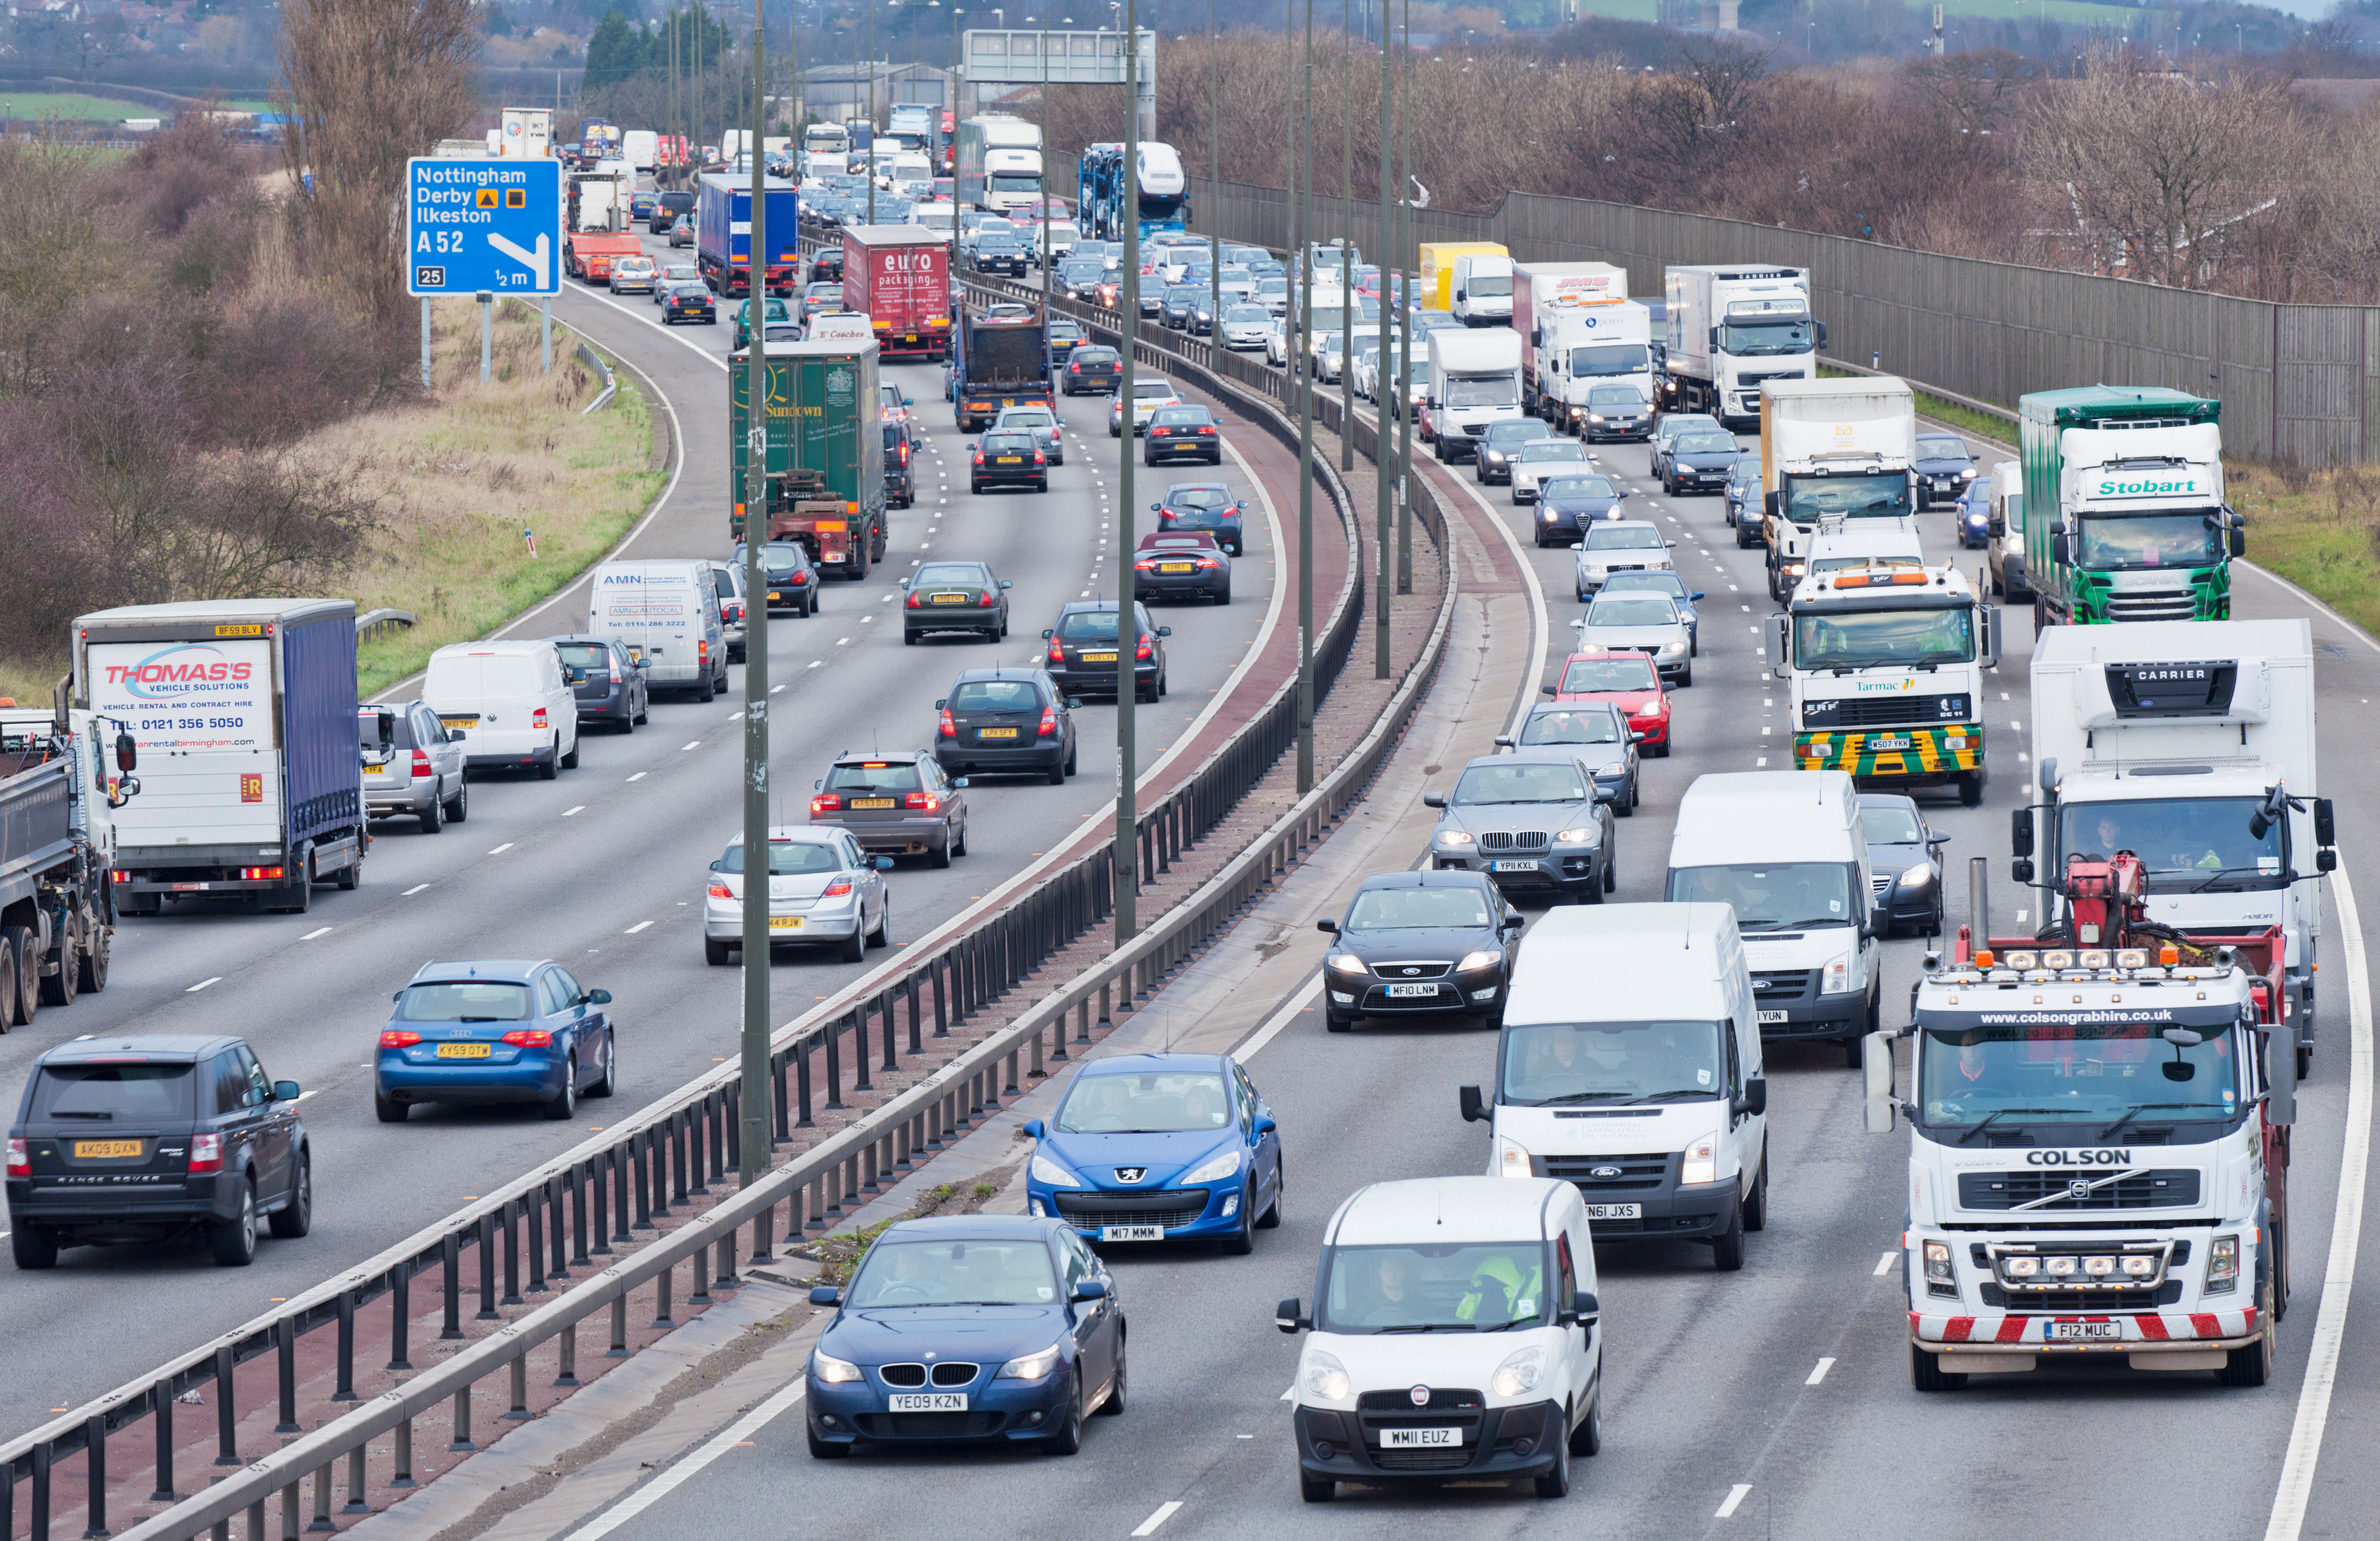 The new purchase tax is aimed at petrol and diesel car owners